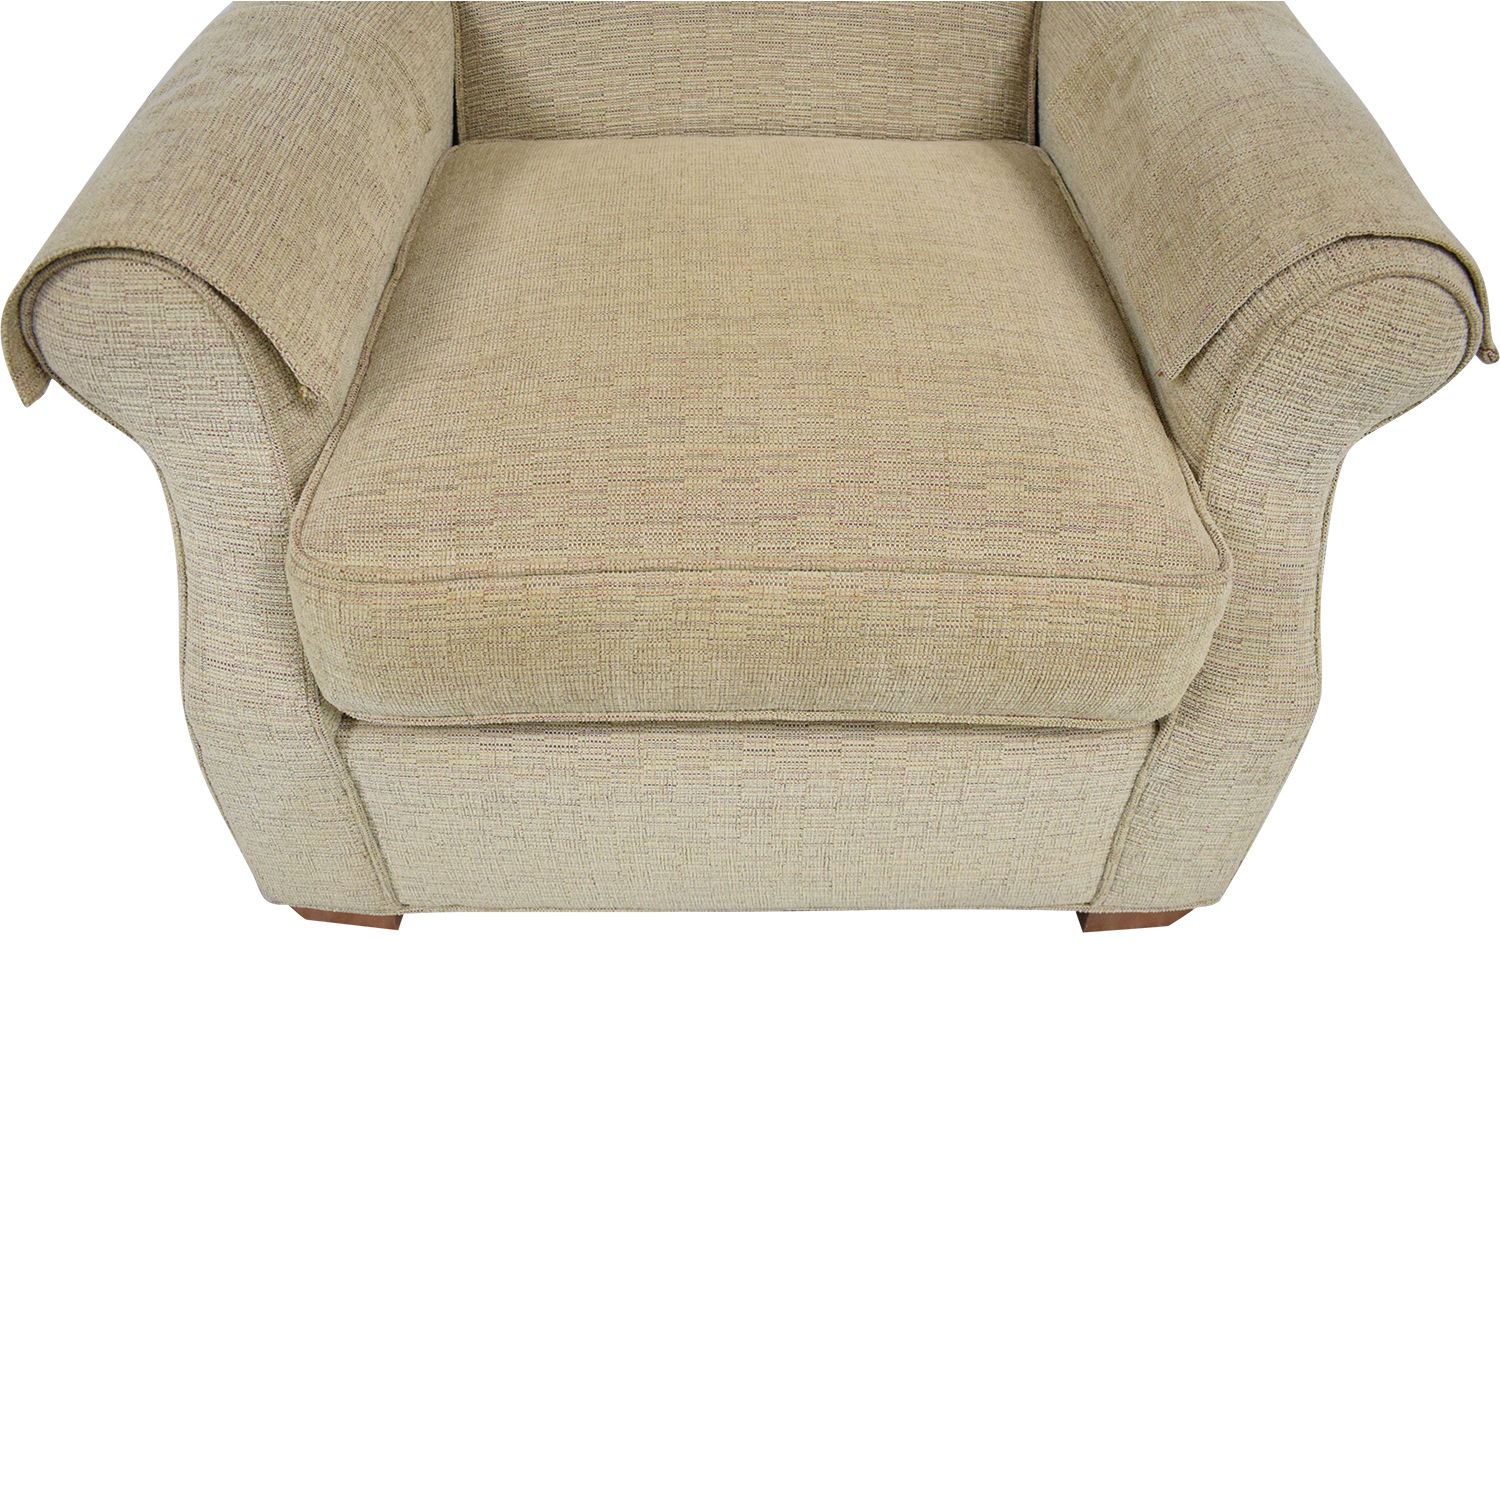 Macy's Upholstered Accent Chair Macy's